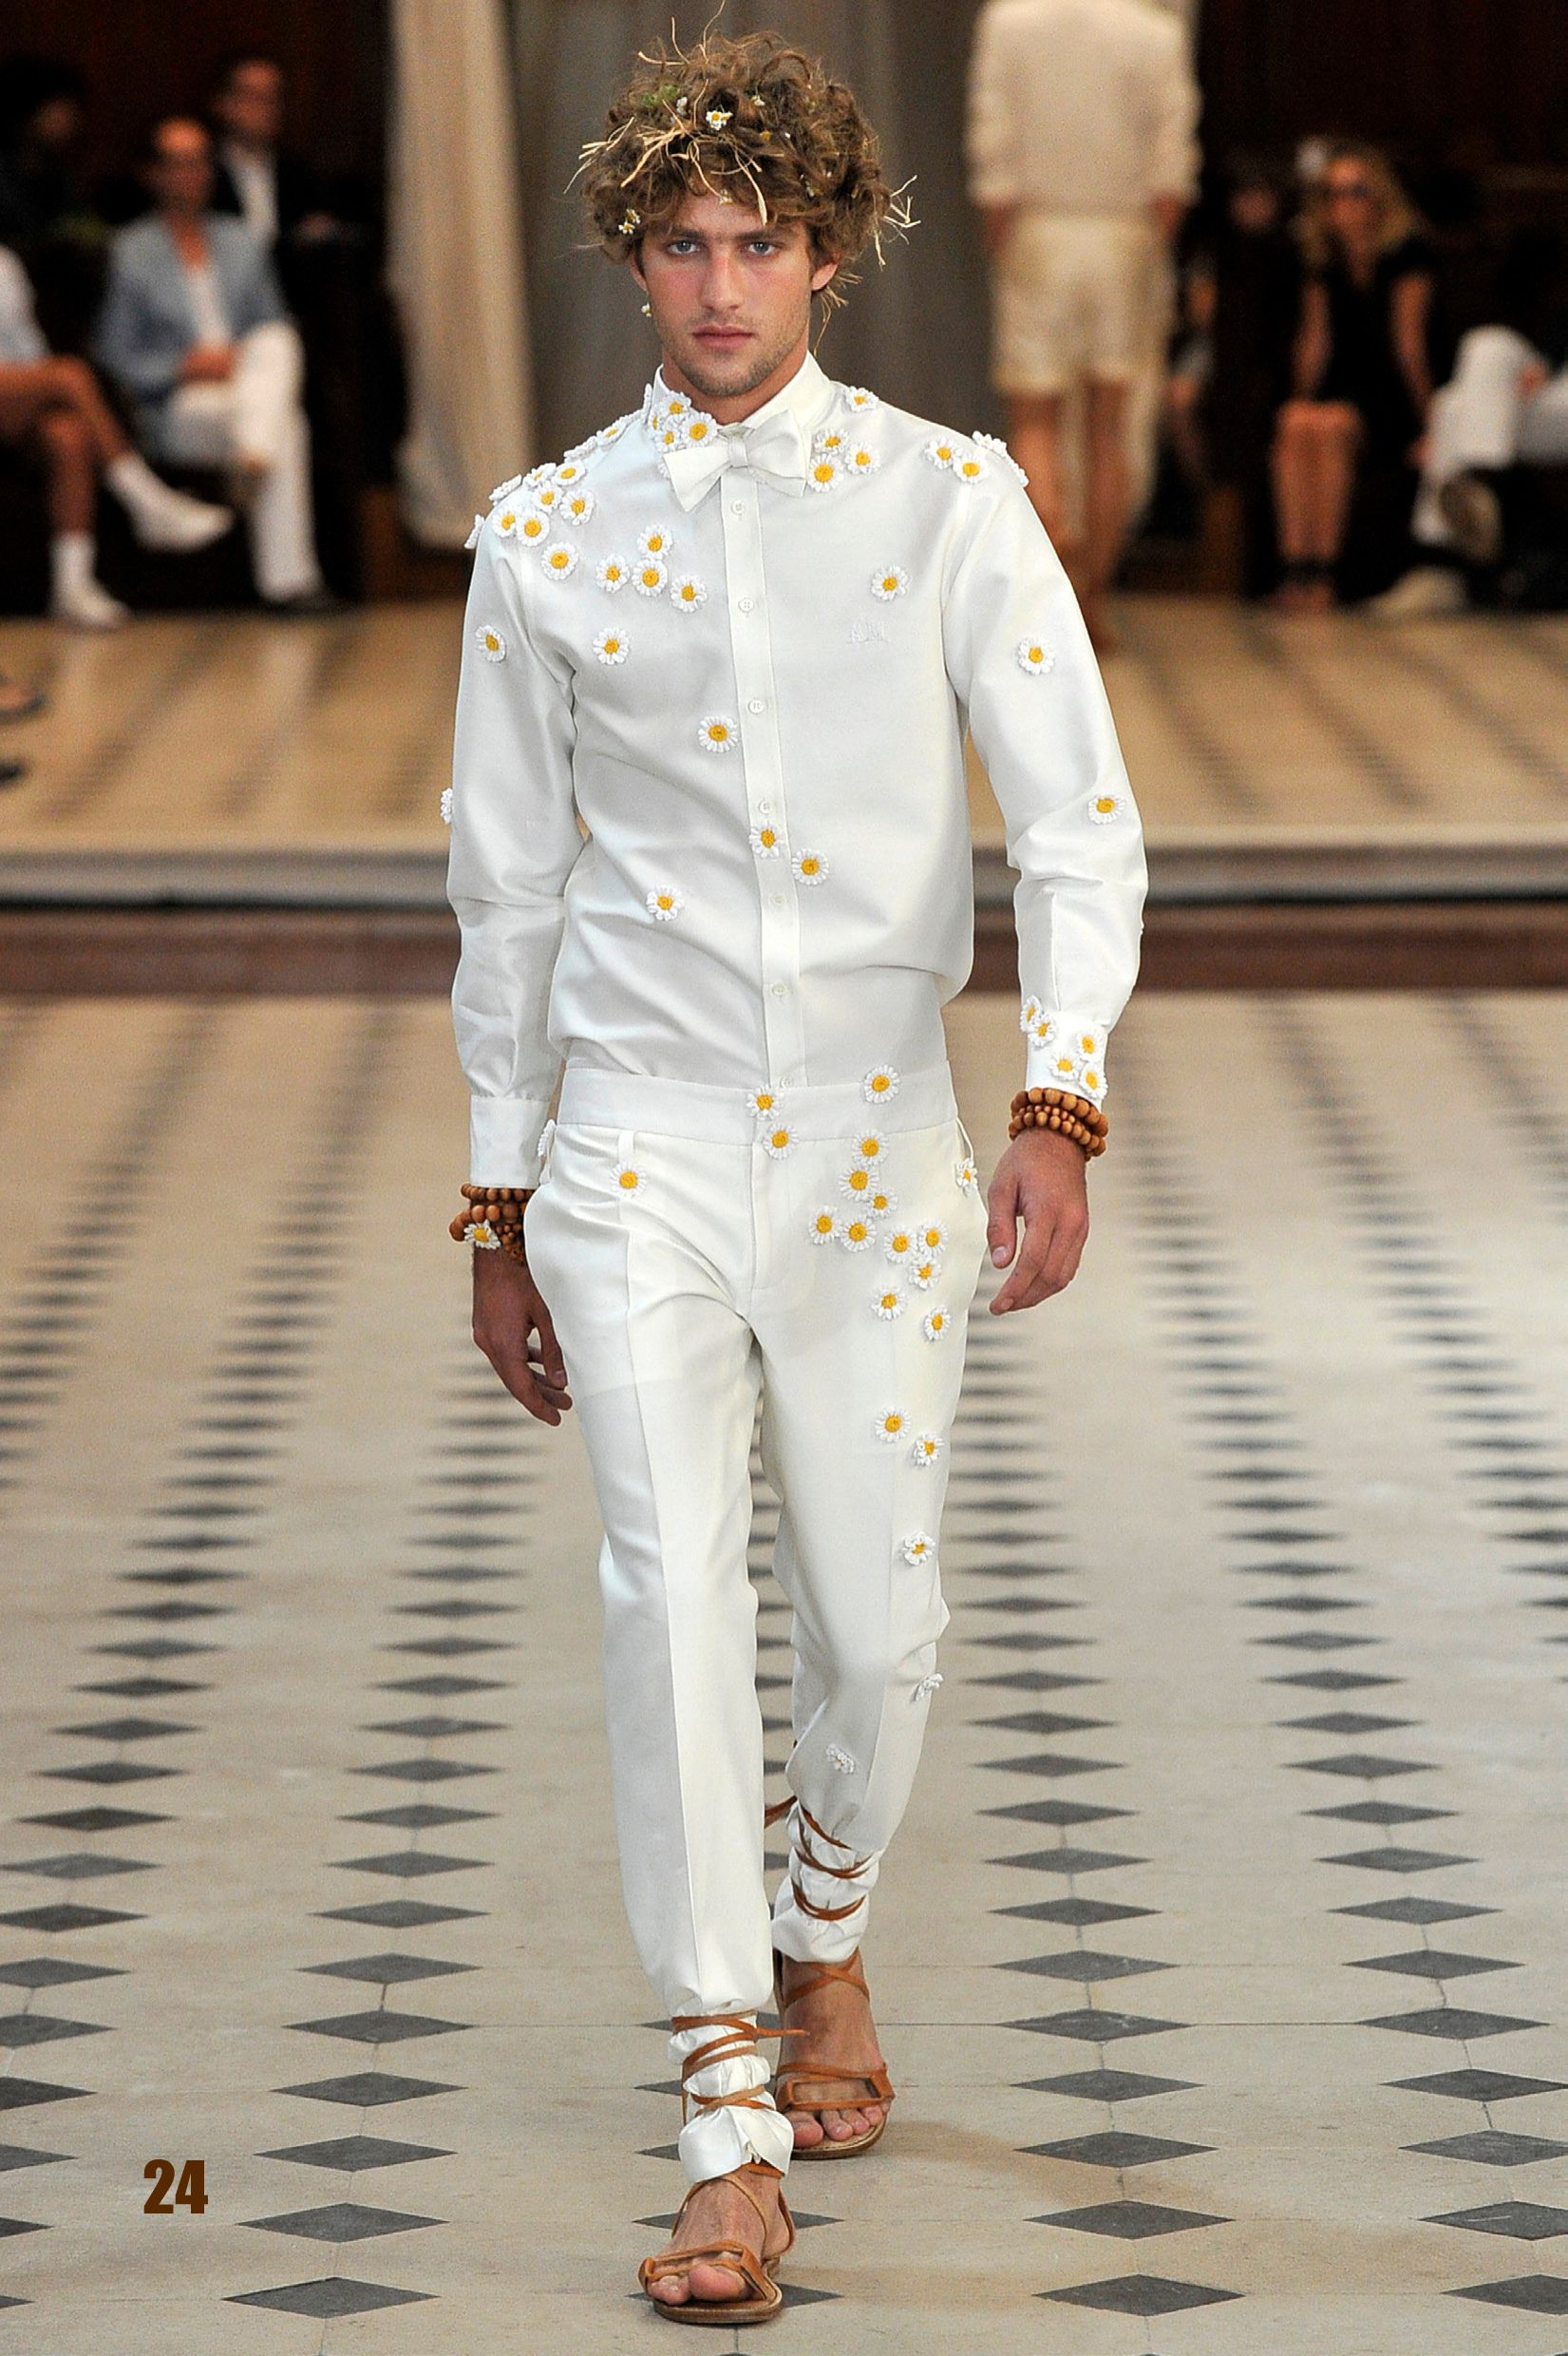 The Daisies over the white shirt and pant combine perfectly masculinity and femininity!